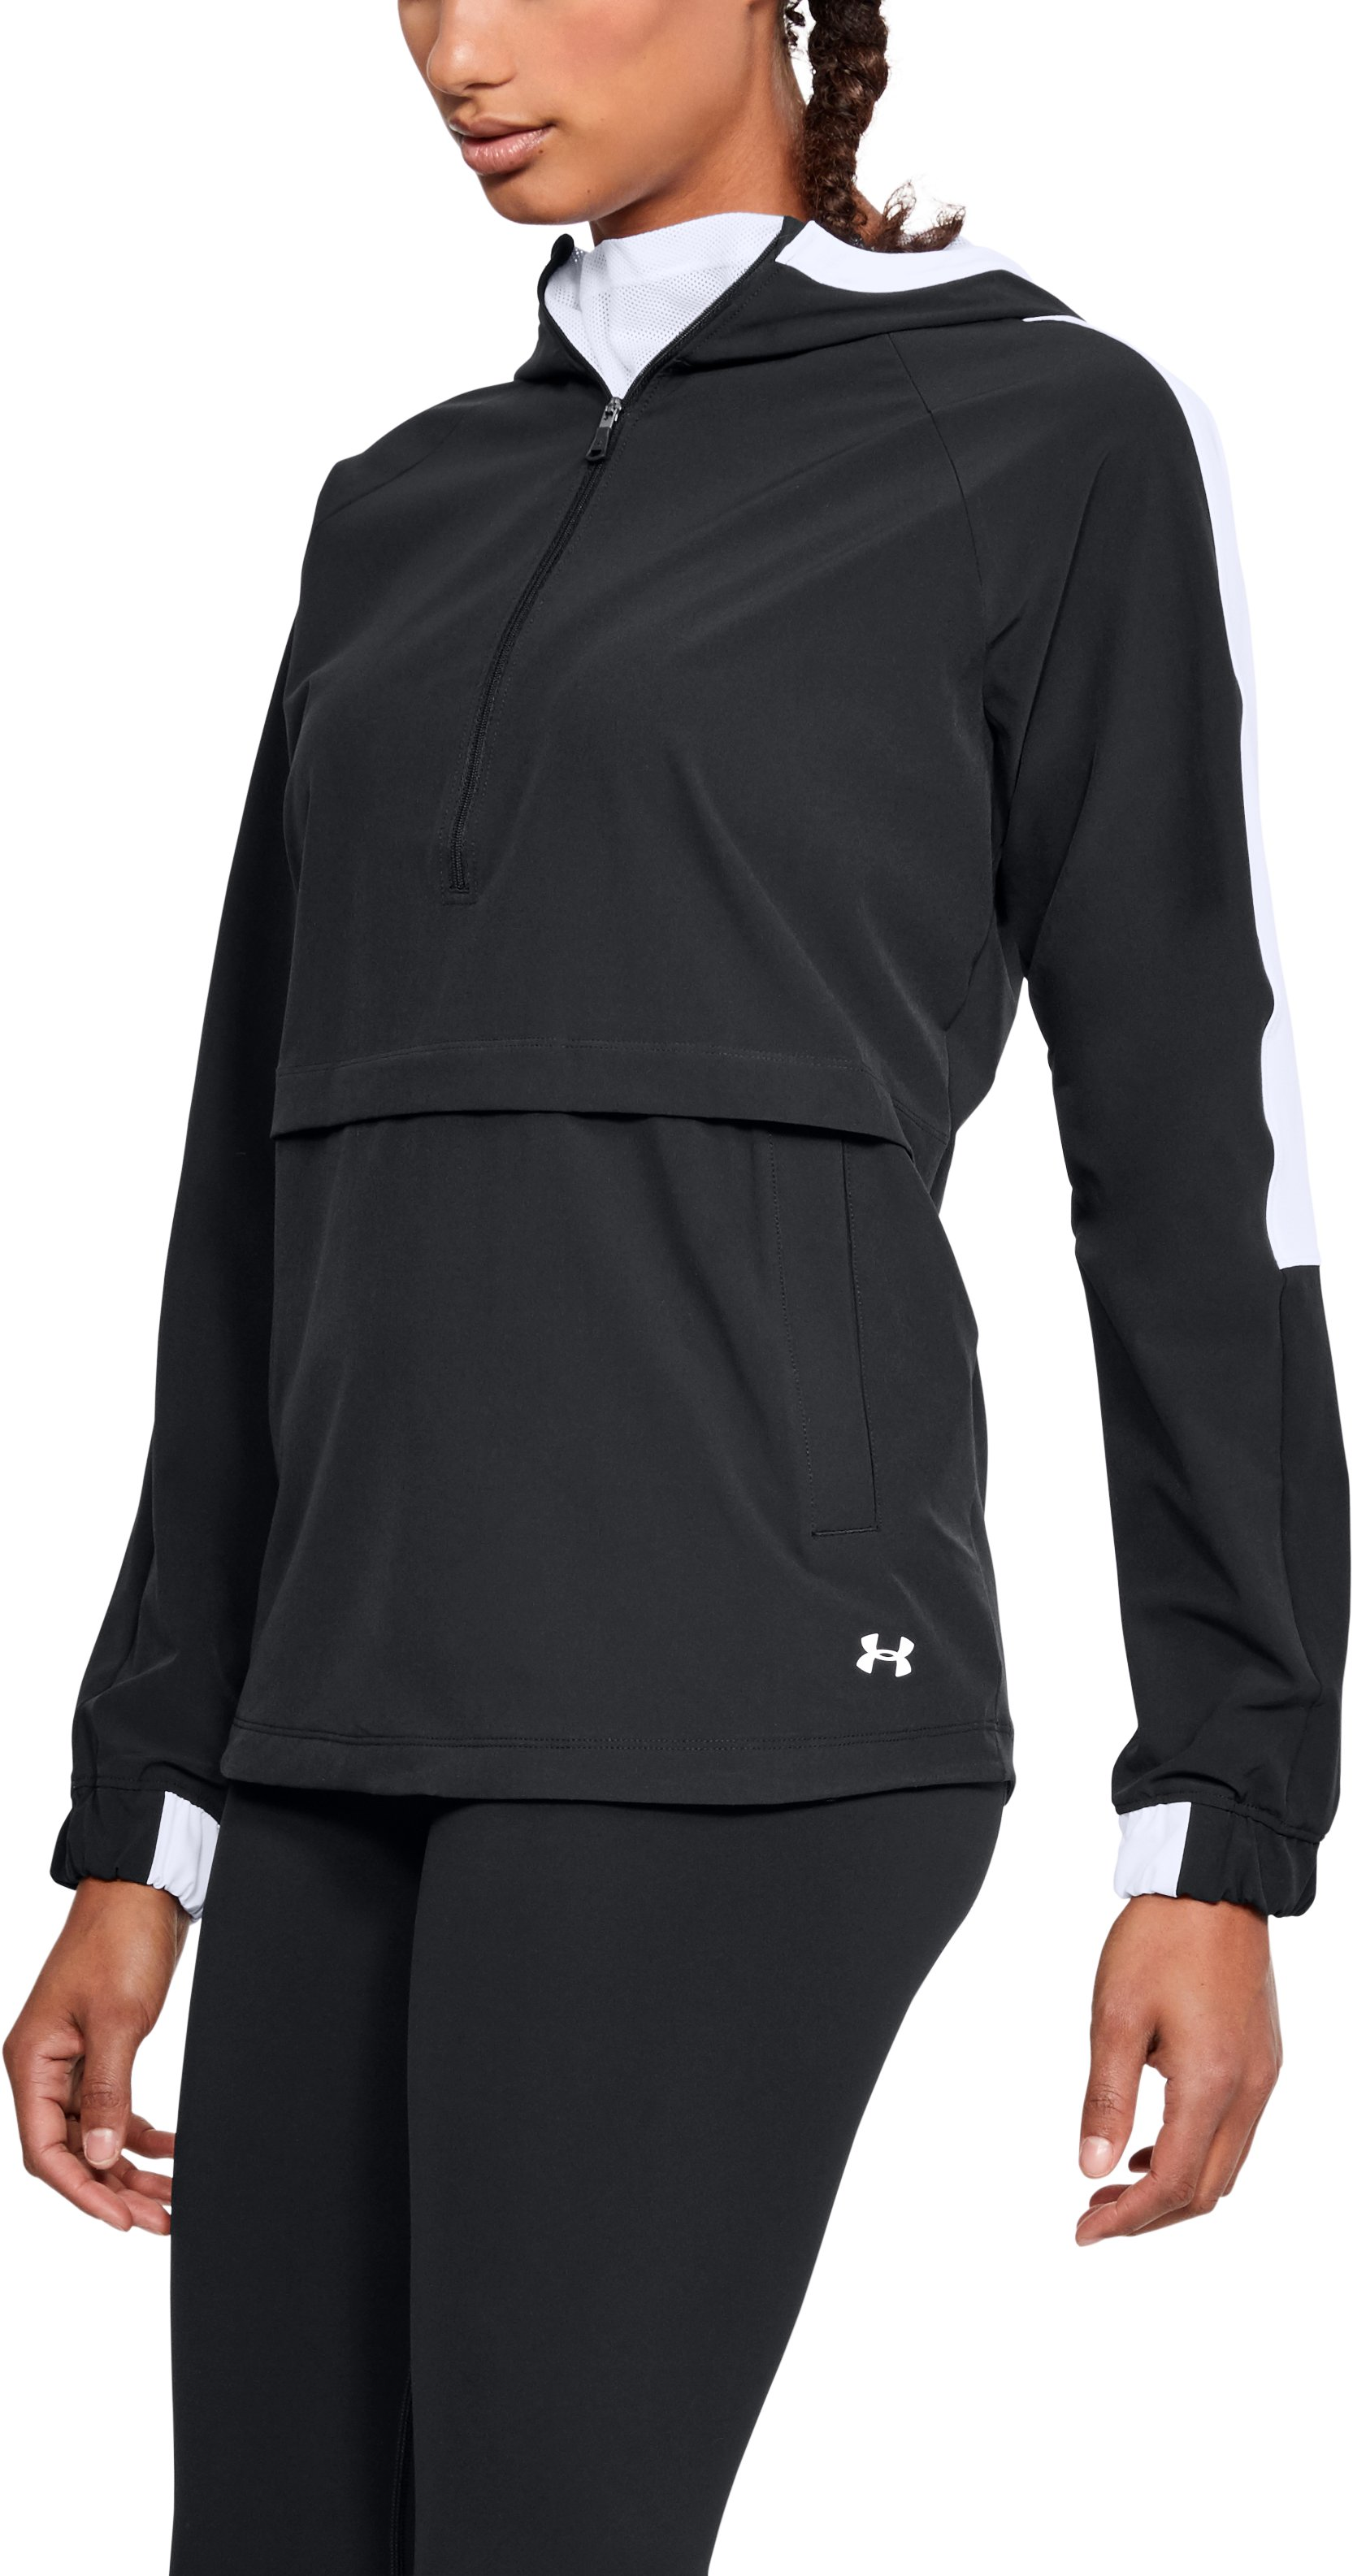 small jackets Women's UA Storm Woven Anorak Jacket This anorak is the best all around layering piece I've found....I love it!...I love how roomy it's (may be a tad bit too big, but I like that), and the white really looks nice with leggings.